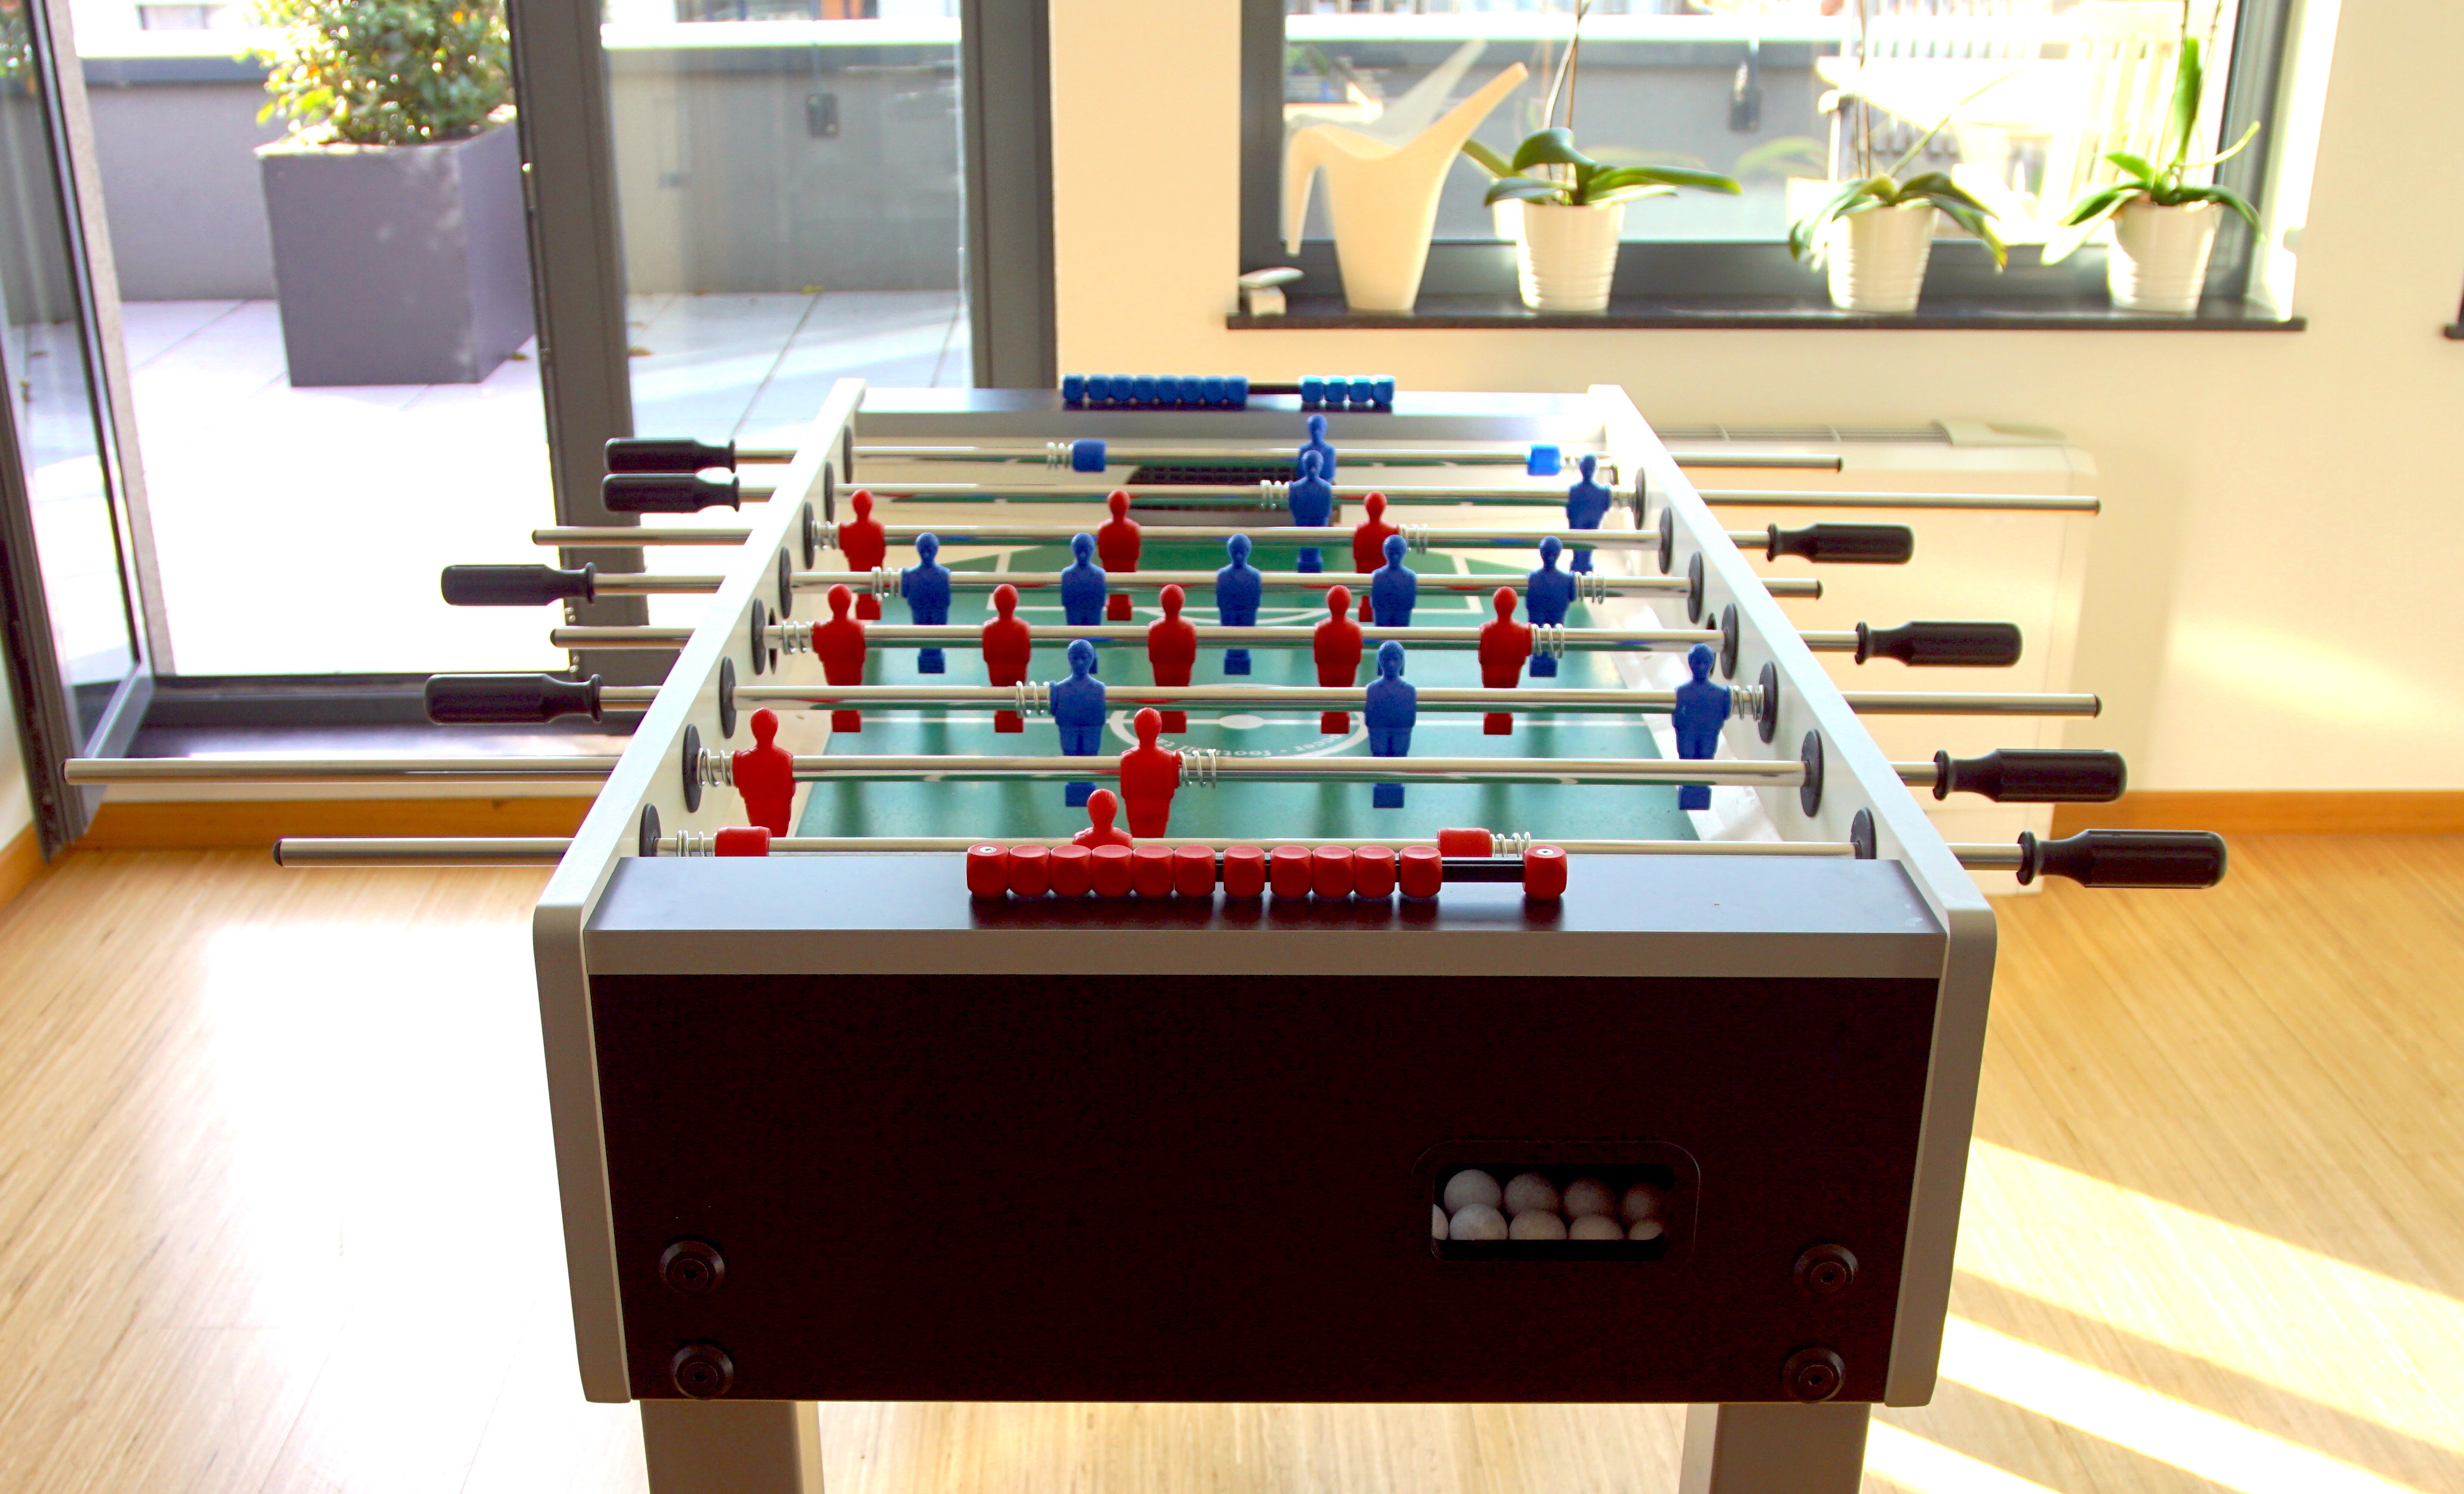 Table Soccer Tournament: #ScoreForCharity